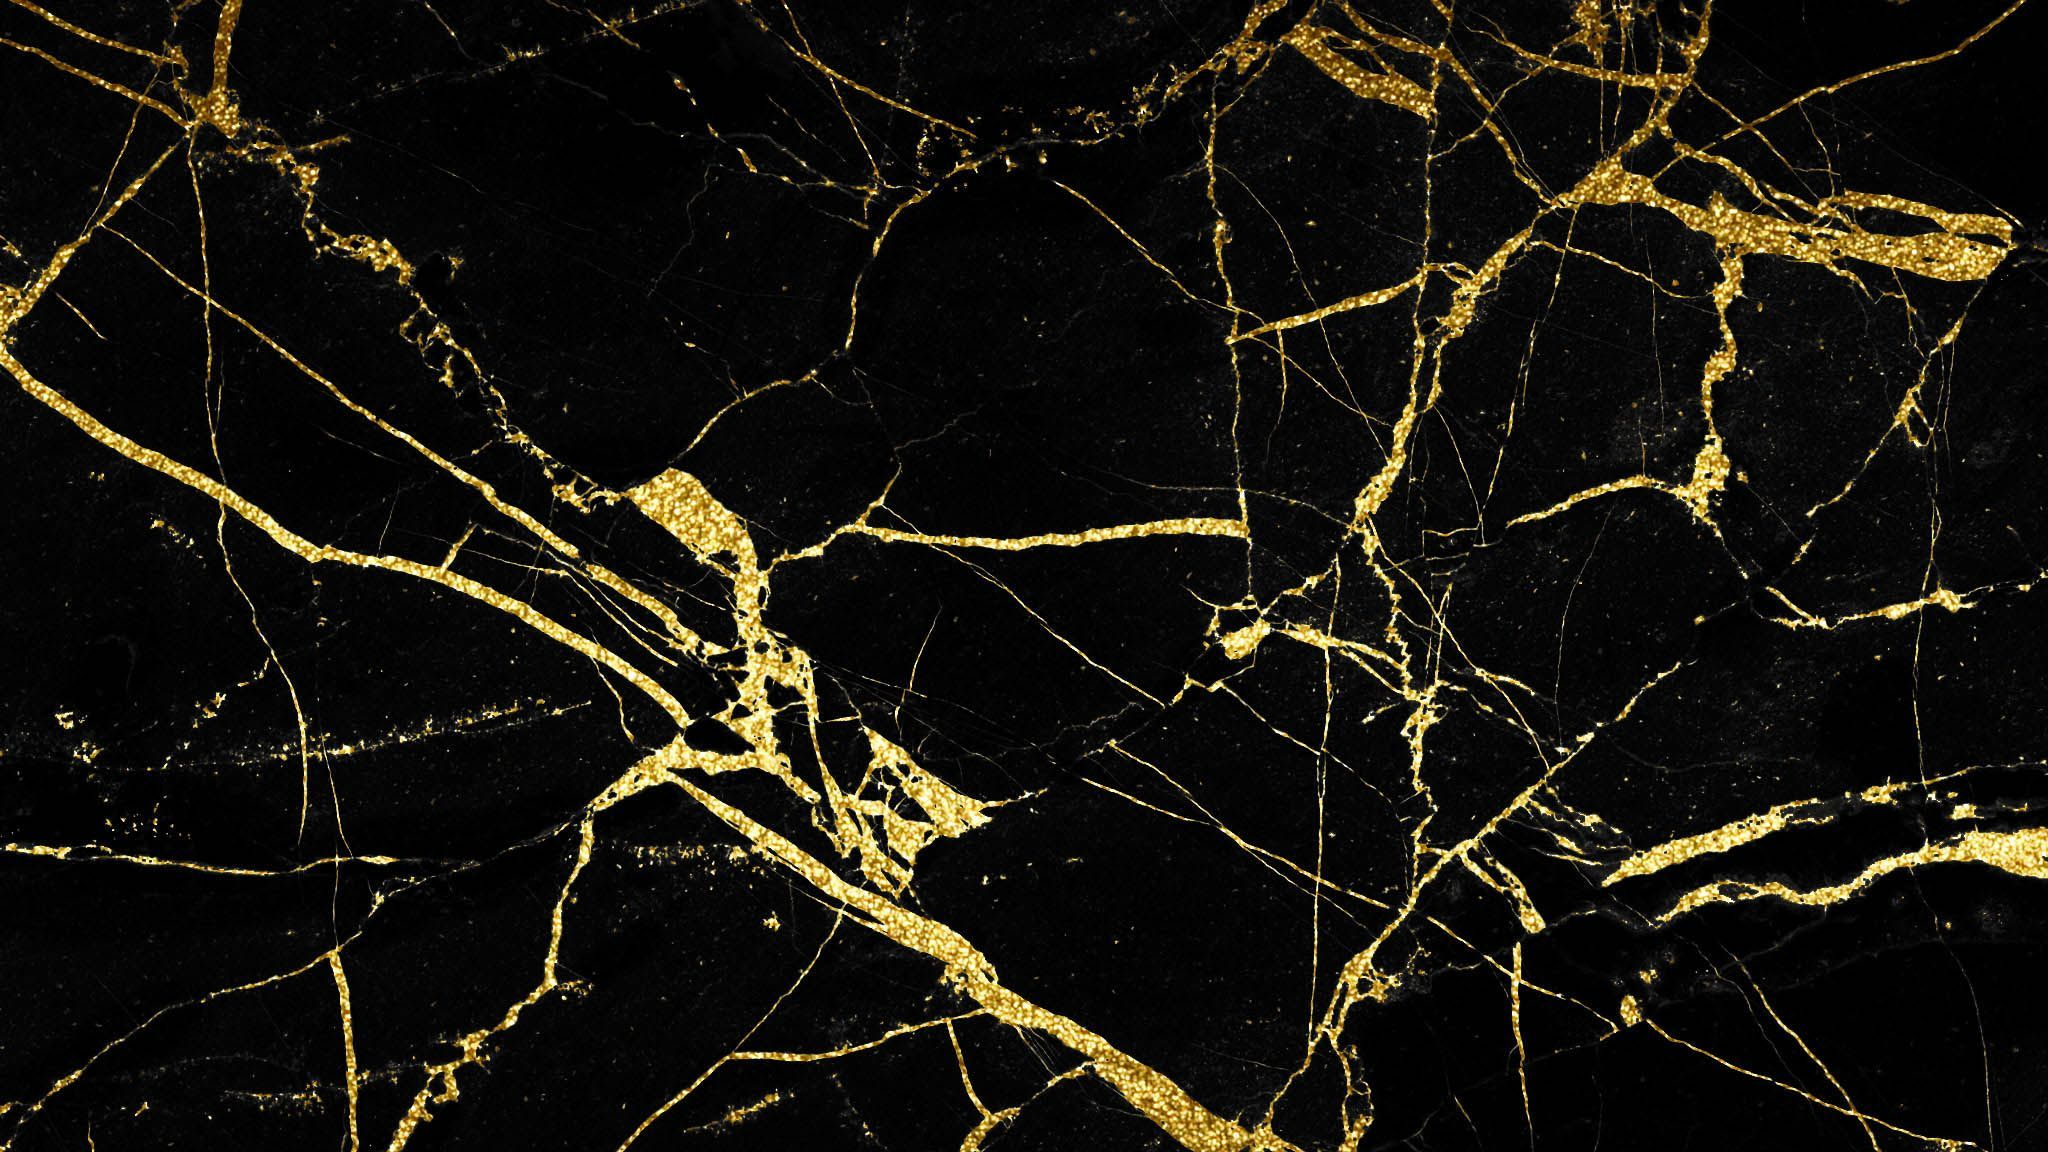 Black Marble Desktop Wallpapers Top Free Black Marble Desktop Backgrounds Wallpaperaccess